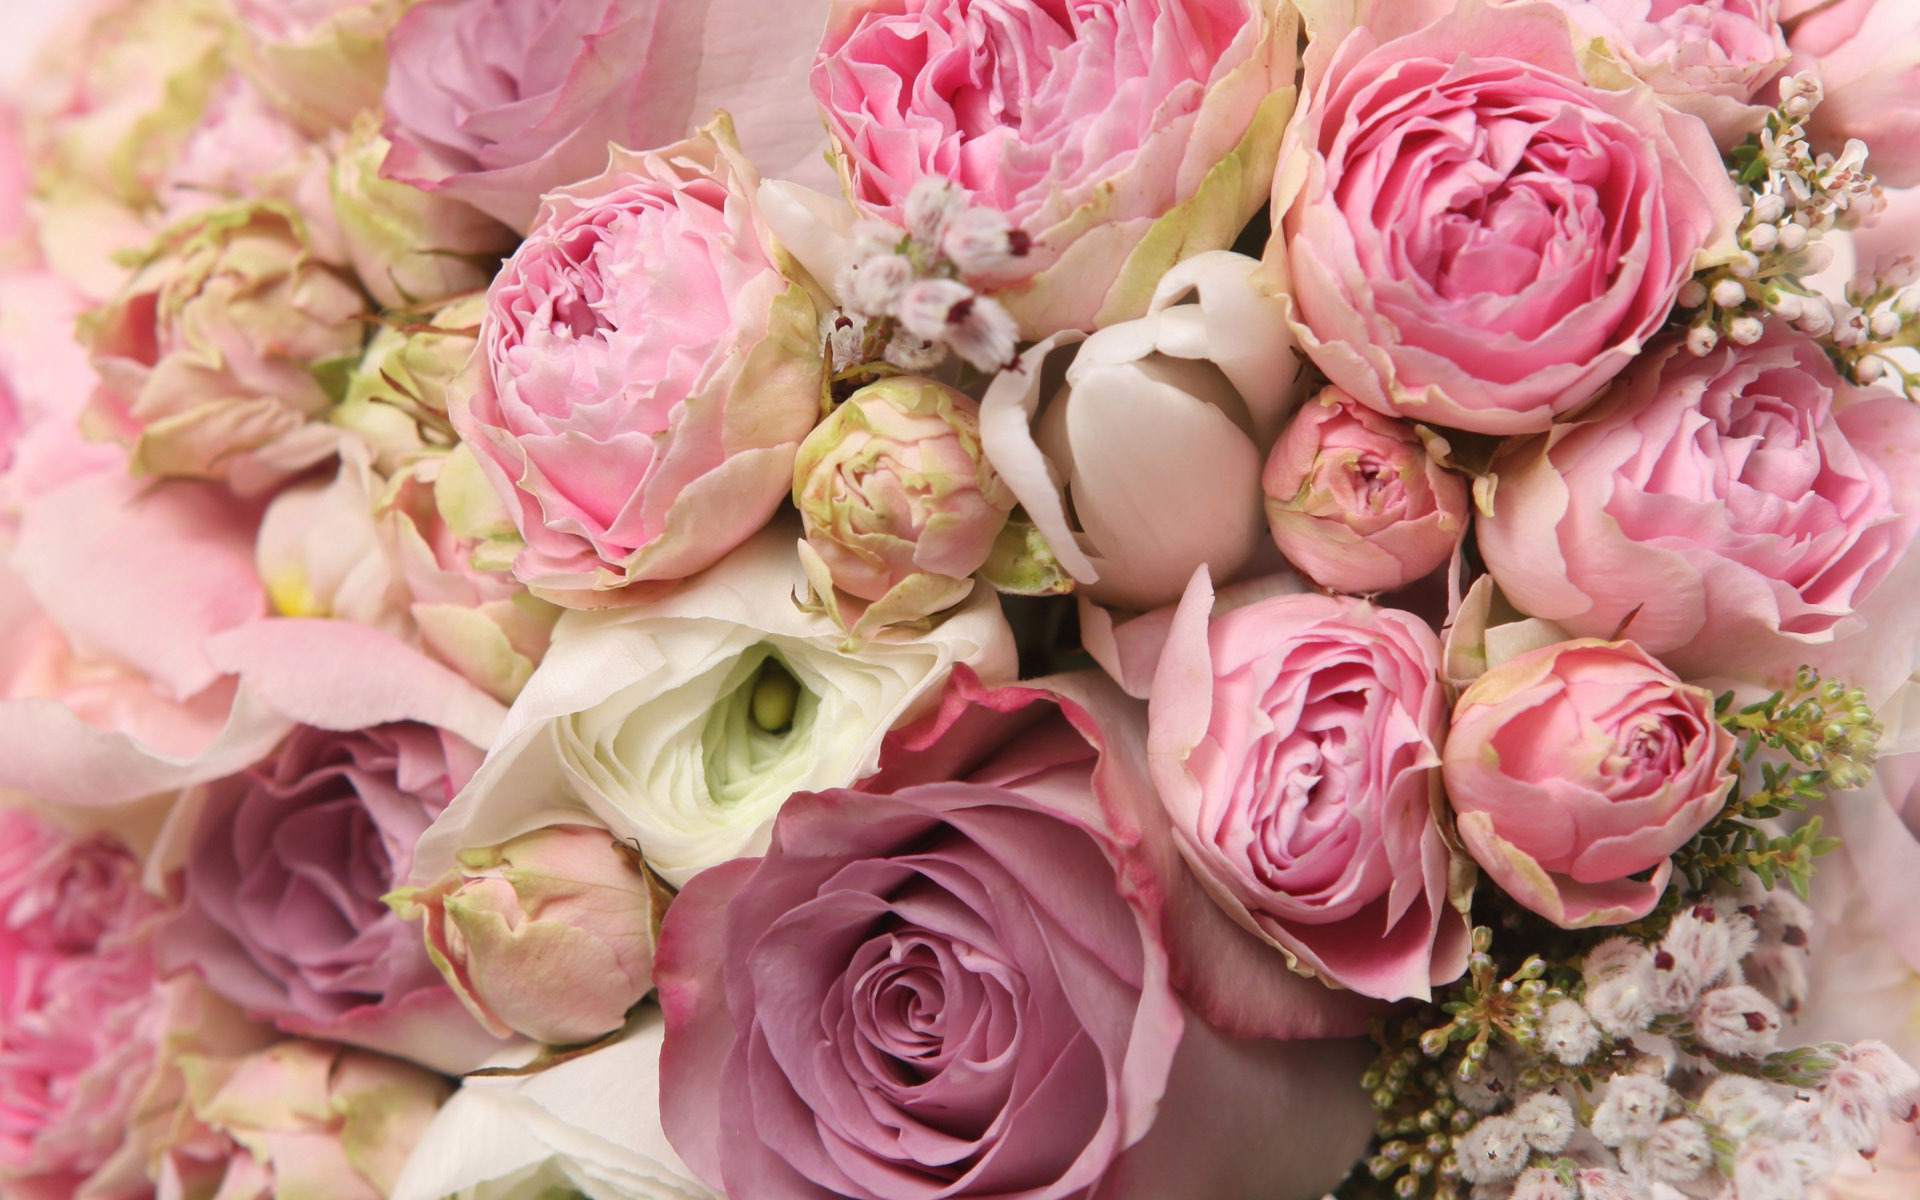 roses and peonies bouquet wallpaper 1206743